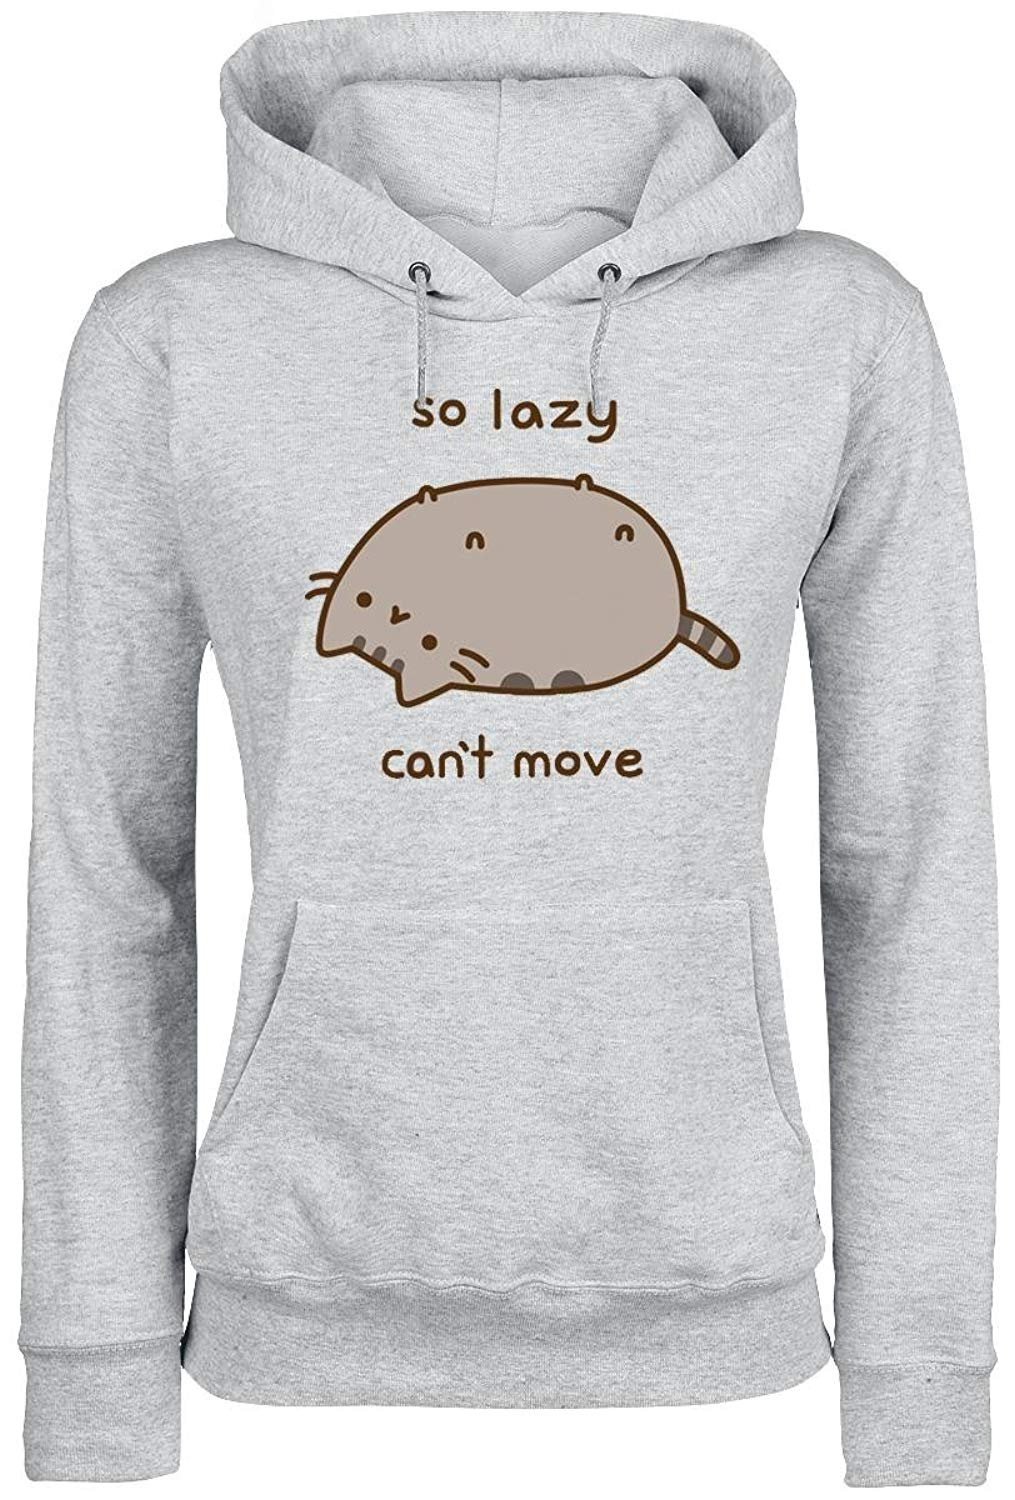 Pusheen So Lazy Cant Move Grey Pullover Shirts